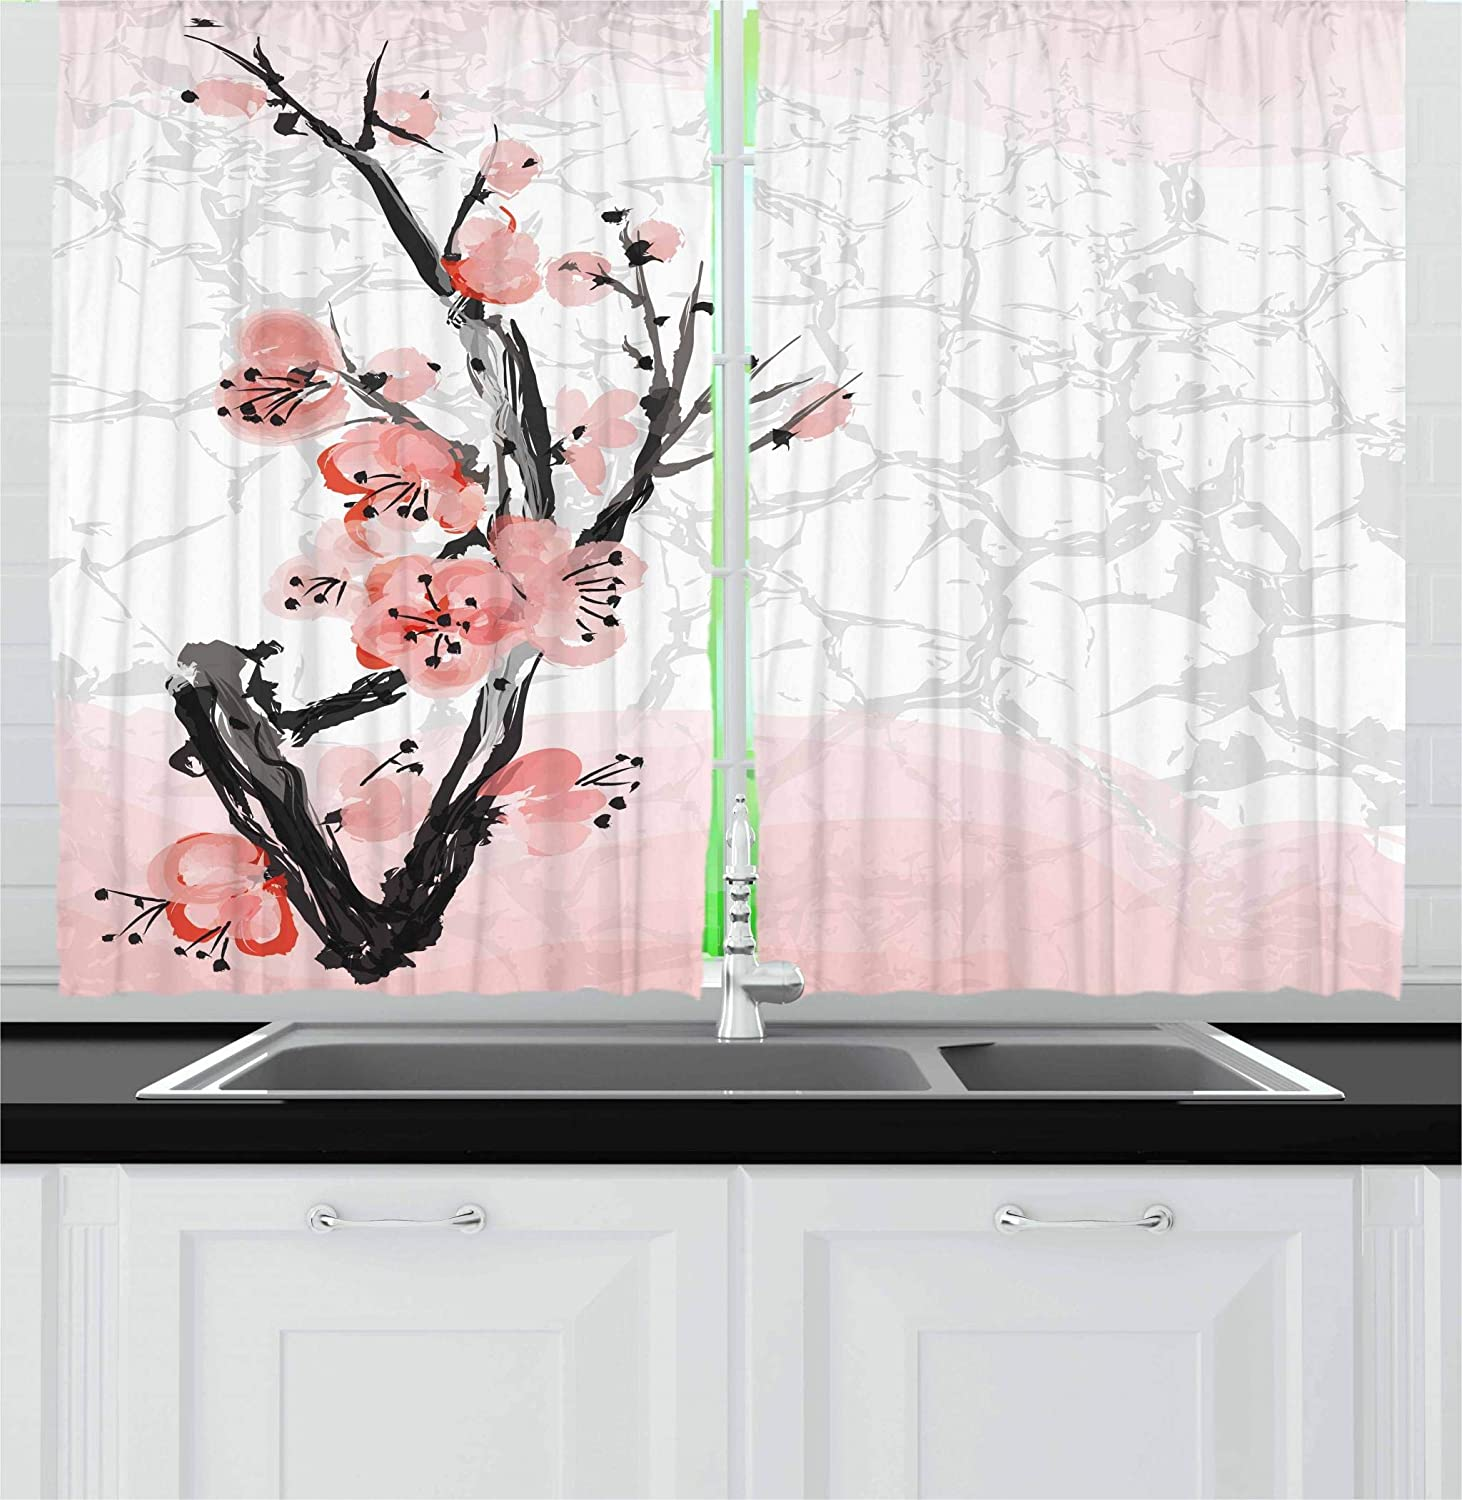 Ambesonne Floral Kitchen Curtains, Japanese Cherry Blossom Sakura Tree Branch Soft Pastel Watercolor Print, Window Drapes 2 Panels Set for Kitchen Cafe, 55W X 39L Inches, Coral Light Pink Grey